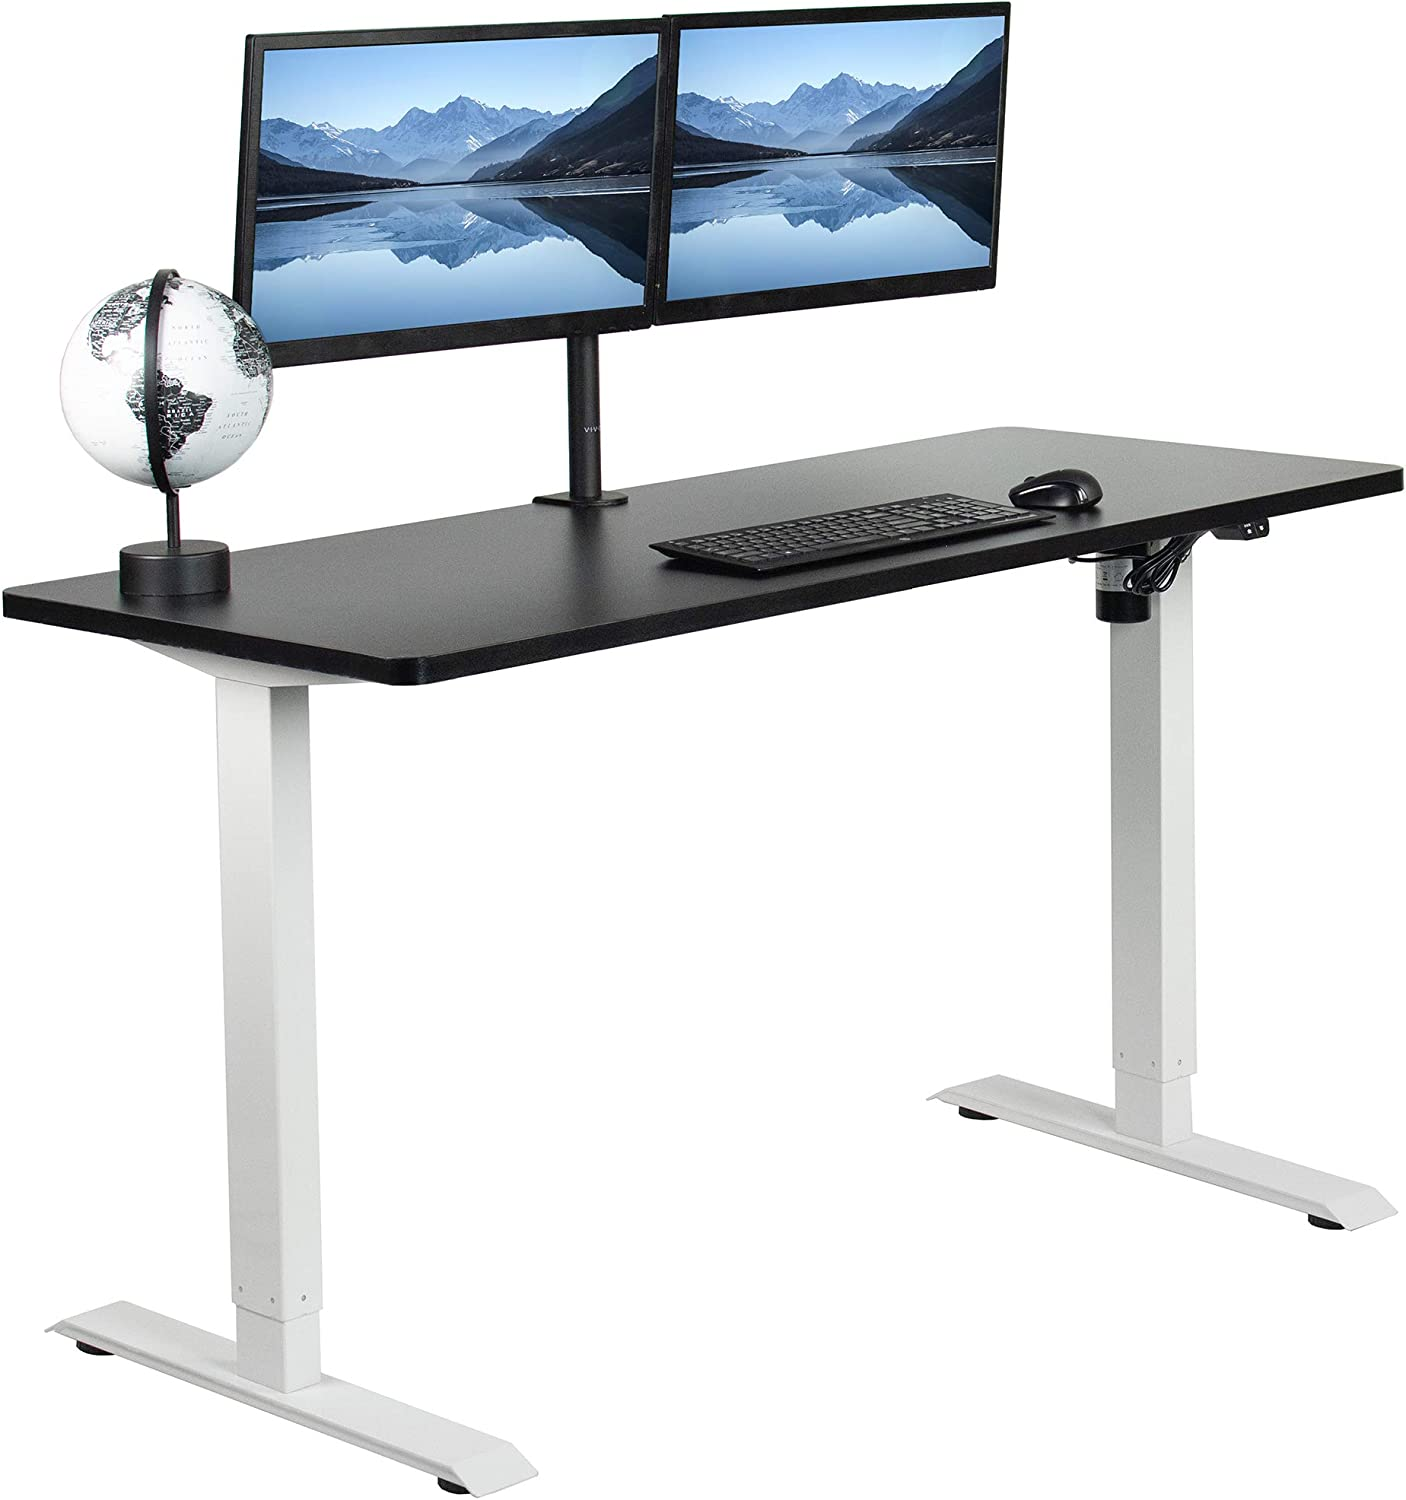 VIVO Electric 60 x 24 inch Stand Up Desk, Black Solid One-Piece Table Top, White Frame, Height Adjustable Standing Workstation with Simple 2 Button Controller (DESK-KIT-W06B)